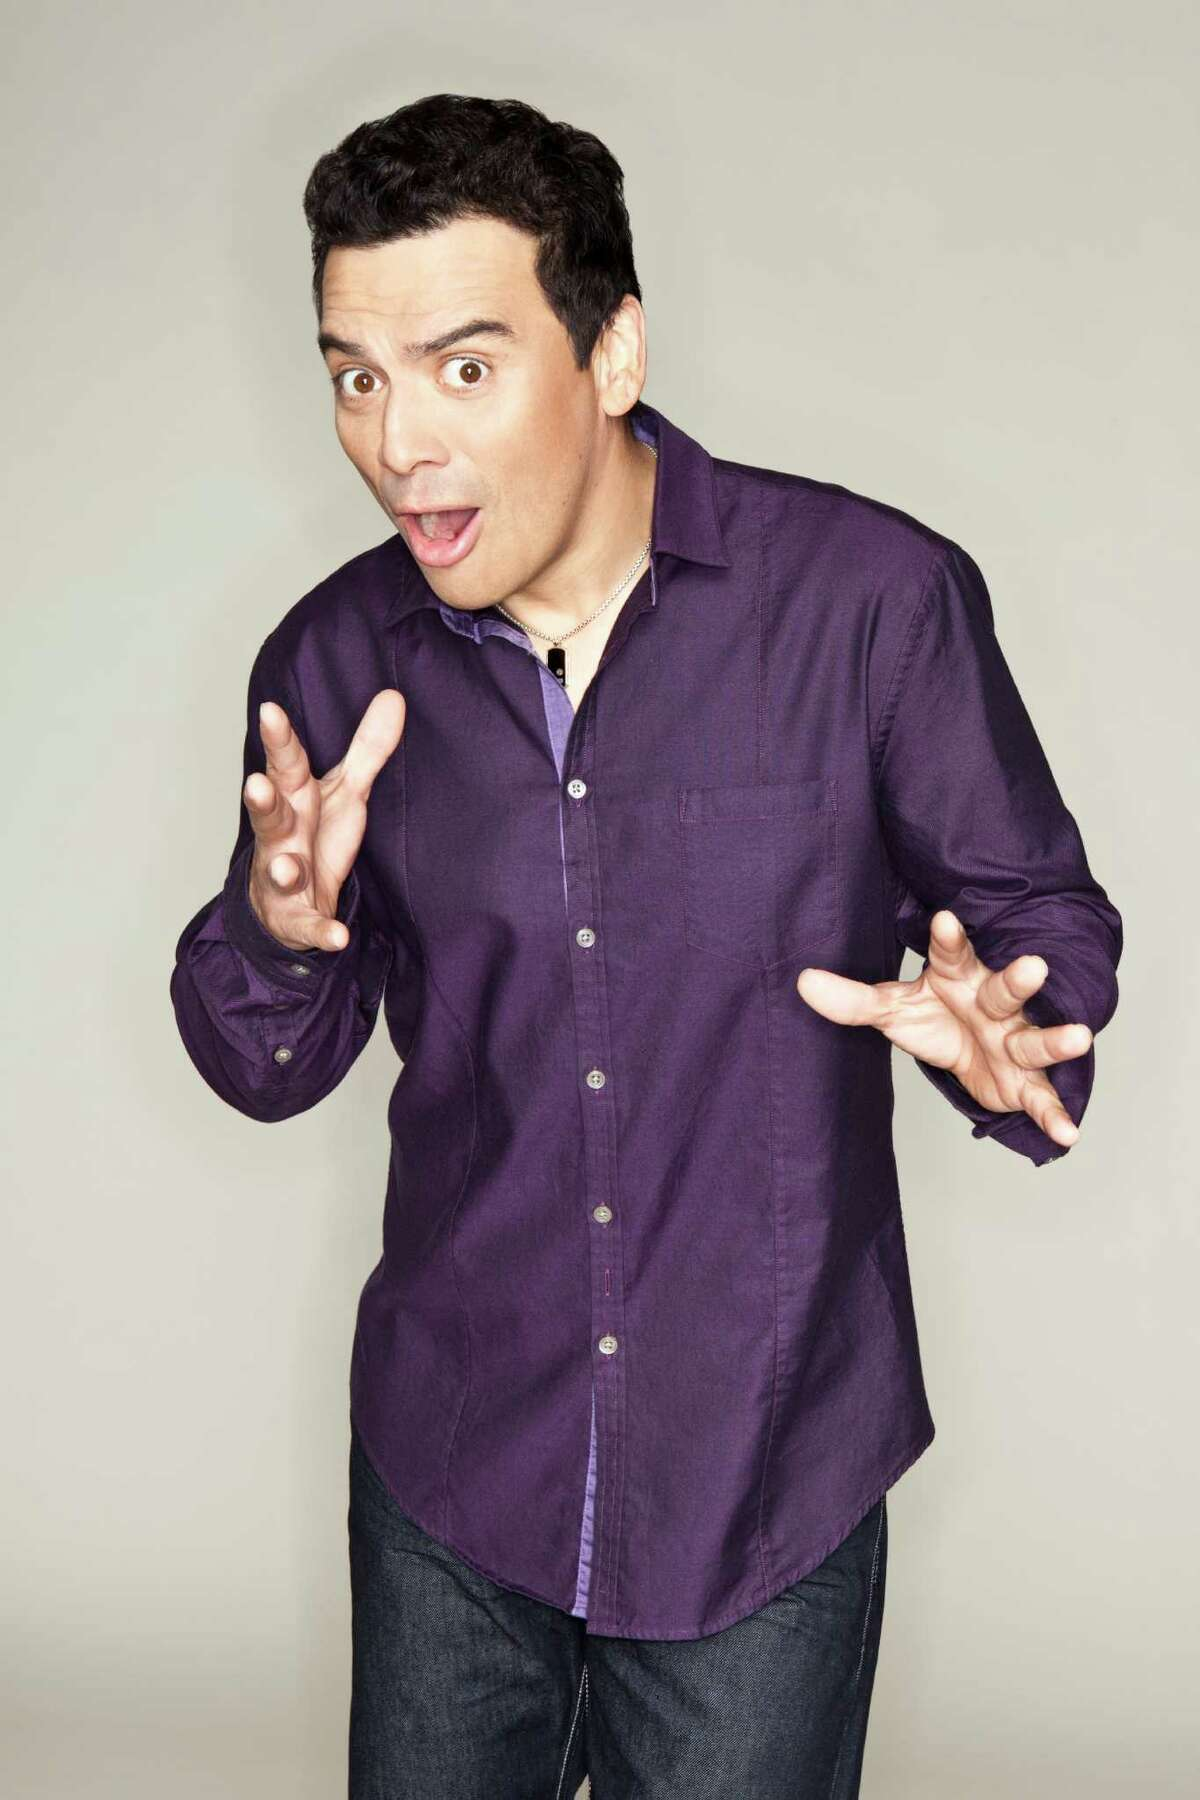 Stand-up comic Carlos Mencia recently lost weight because of concerns about his health.